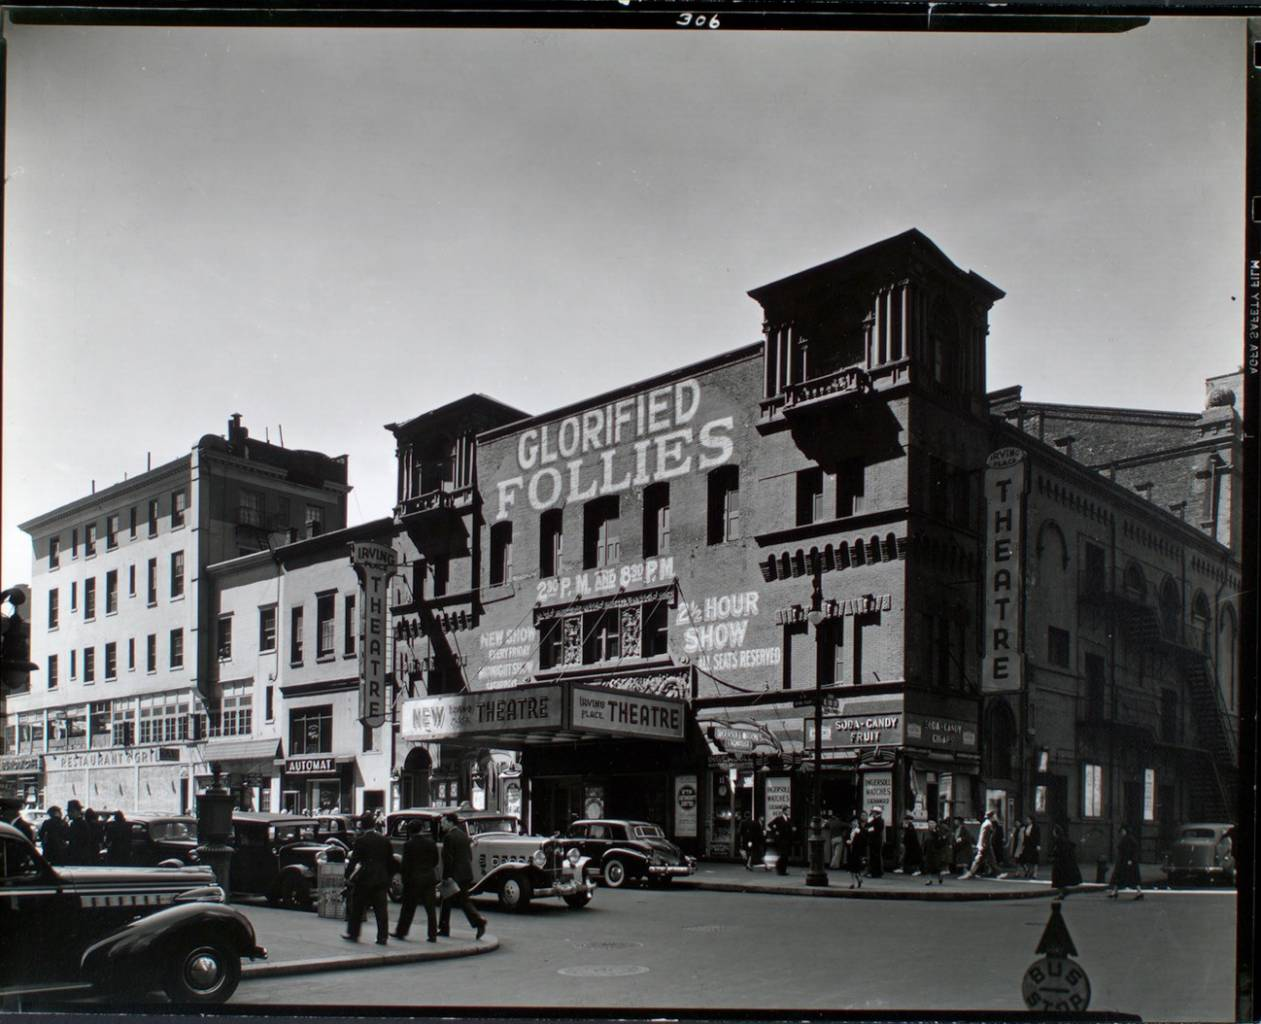 Irving Place Theatre, Irving Place, from Northeast corner of Irving Place and East 15th Street, Manhattan